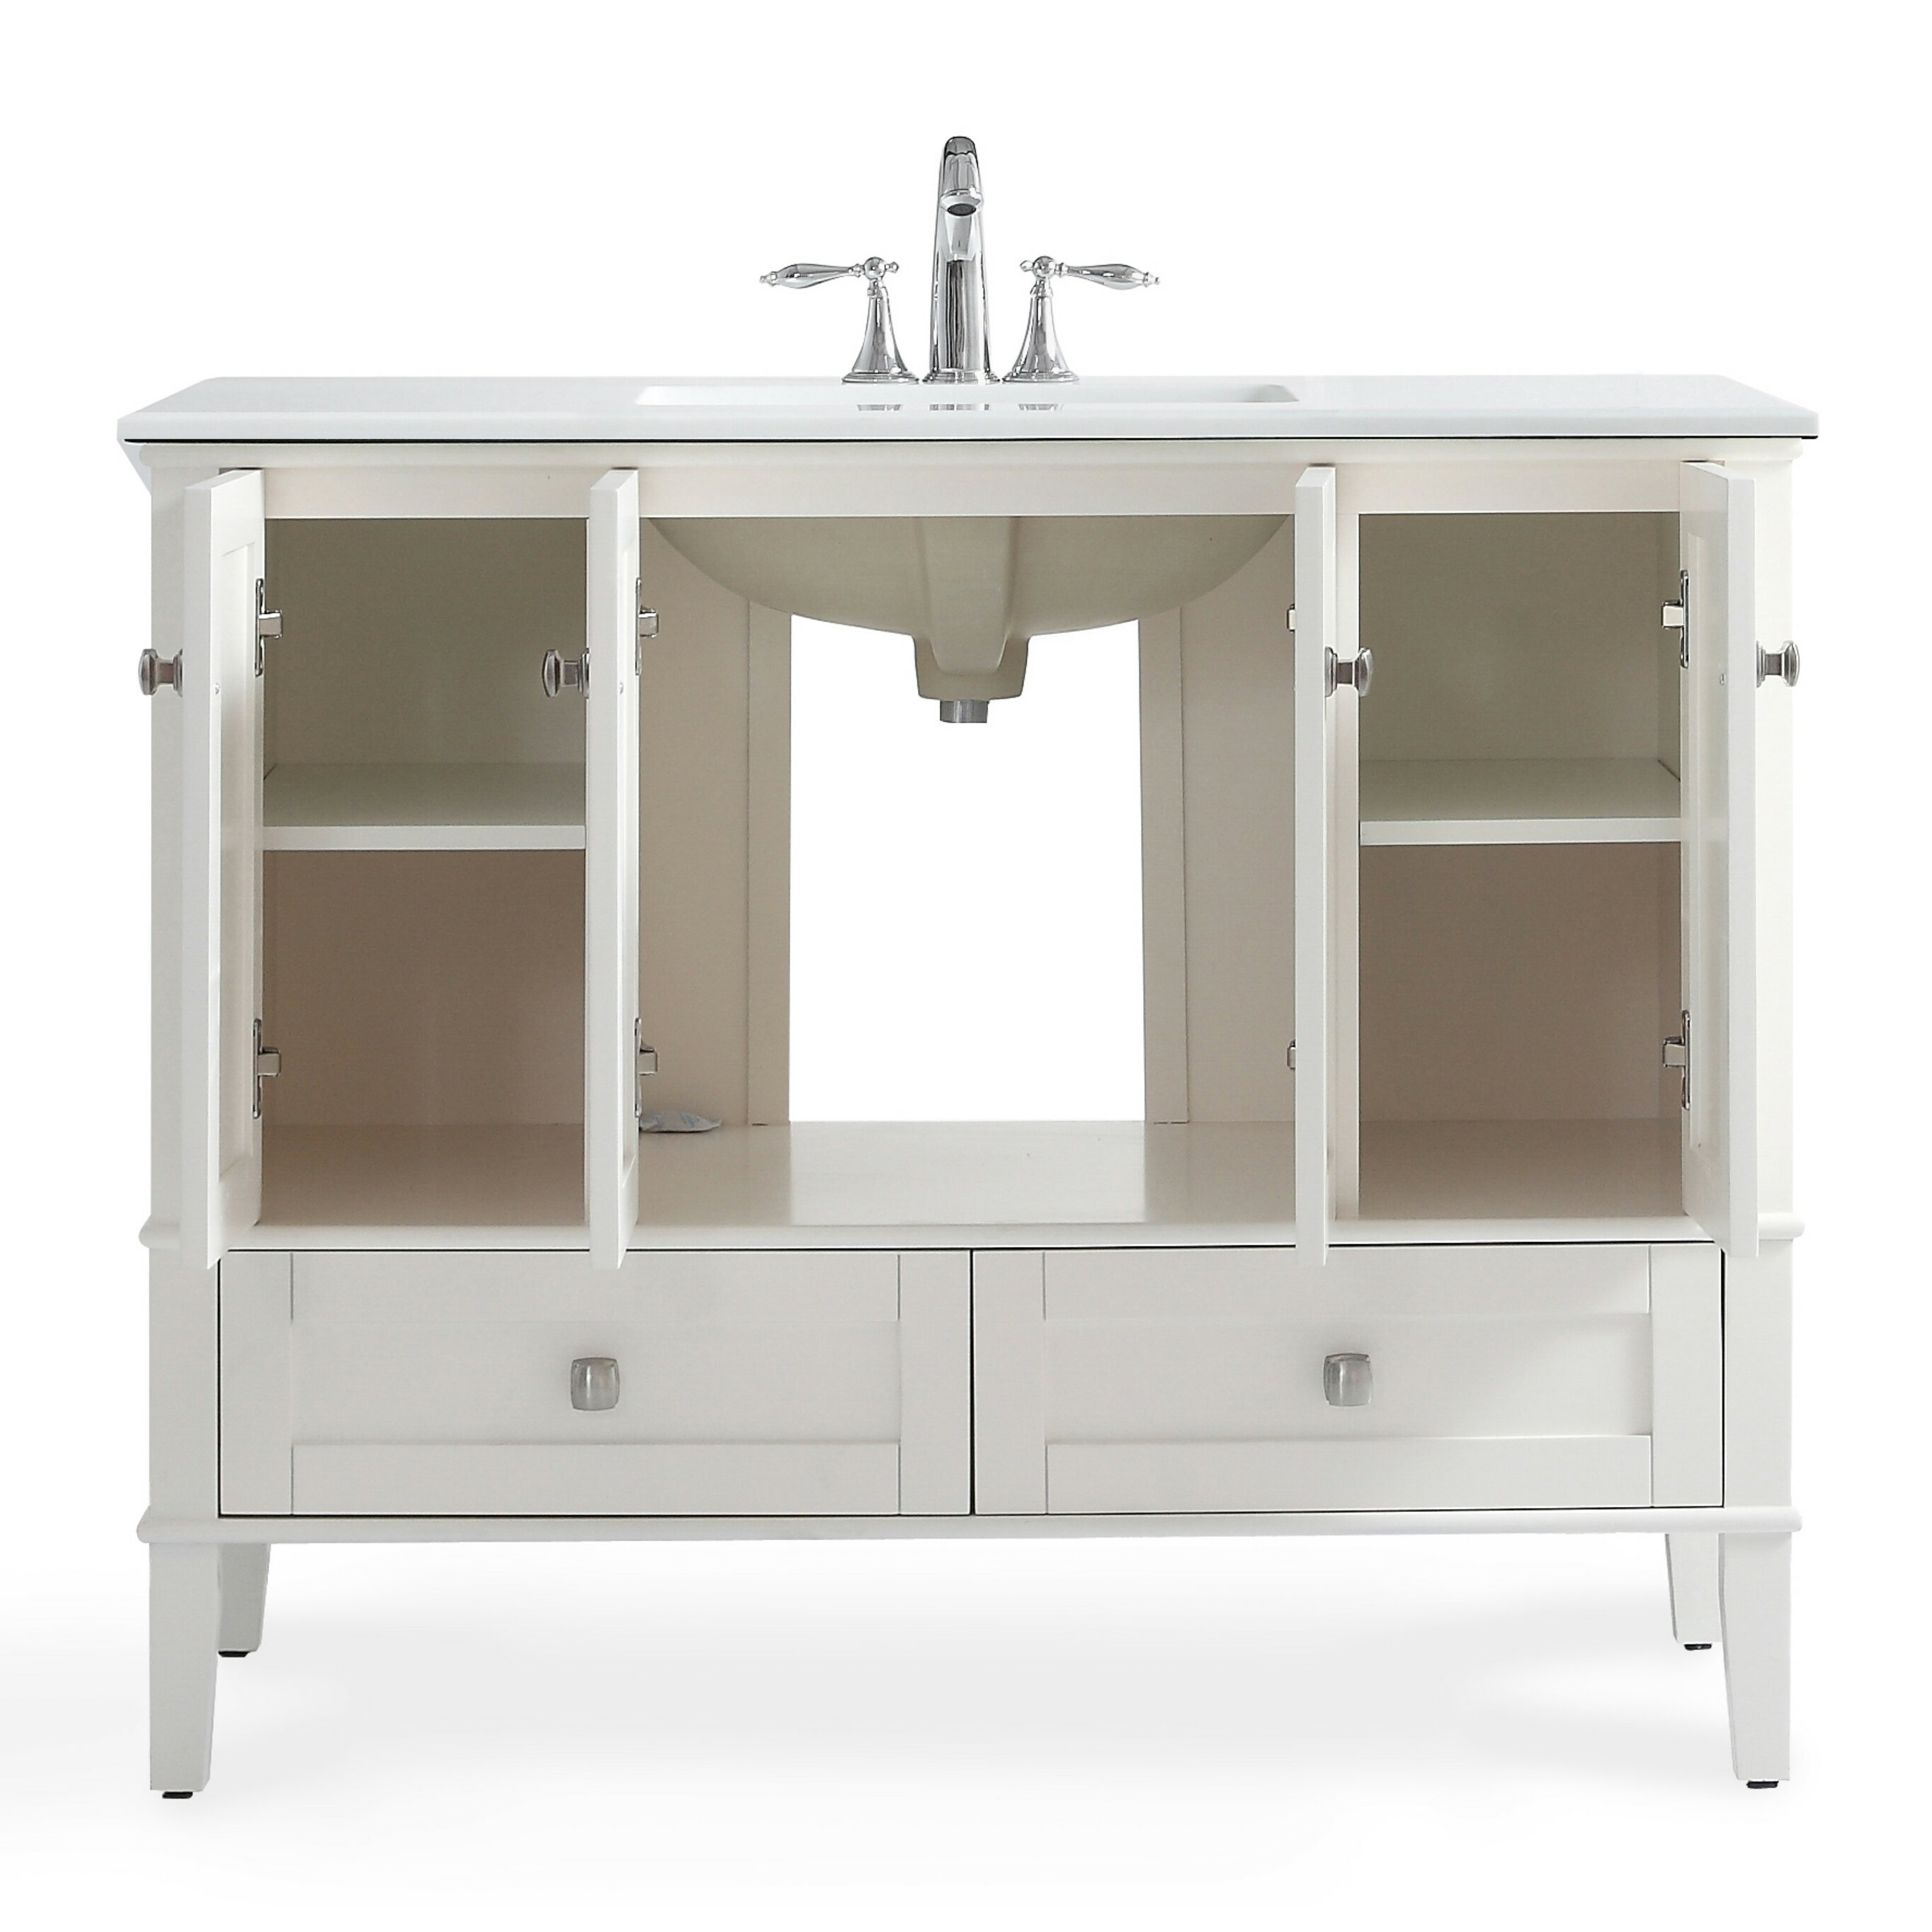 42 Bathroom Vanity Oberlin 42 Single Bathroom Vanity With Quartz Marble Top